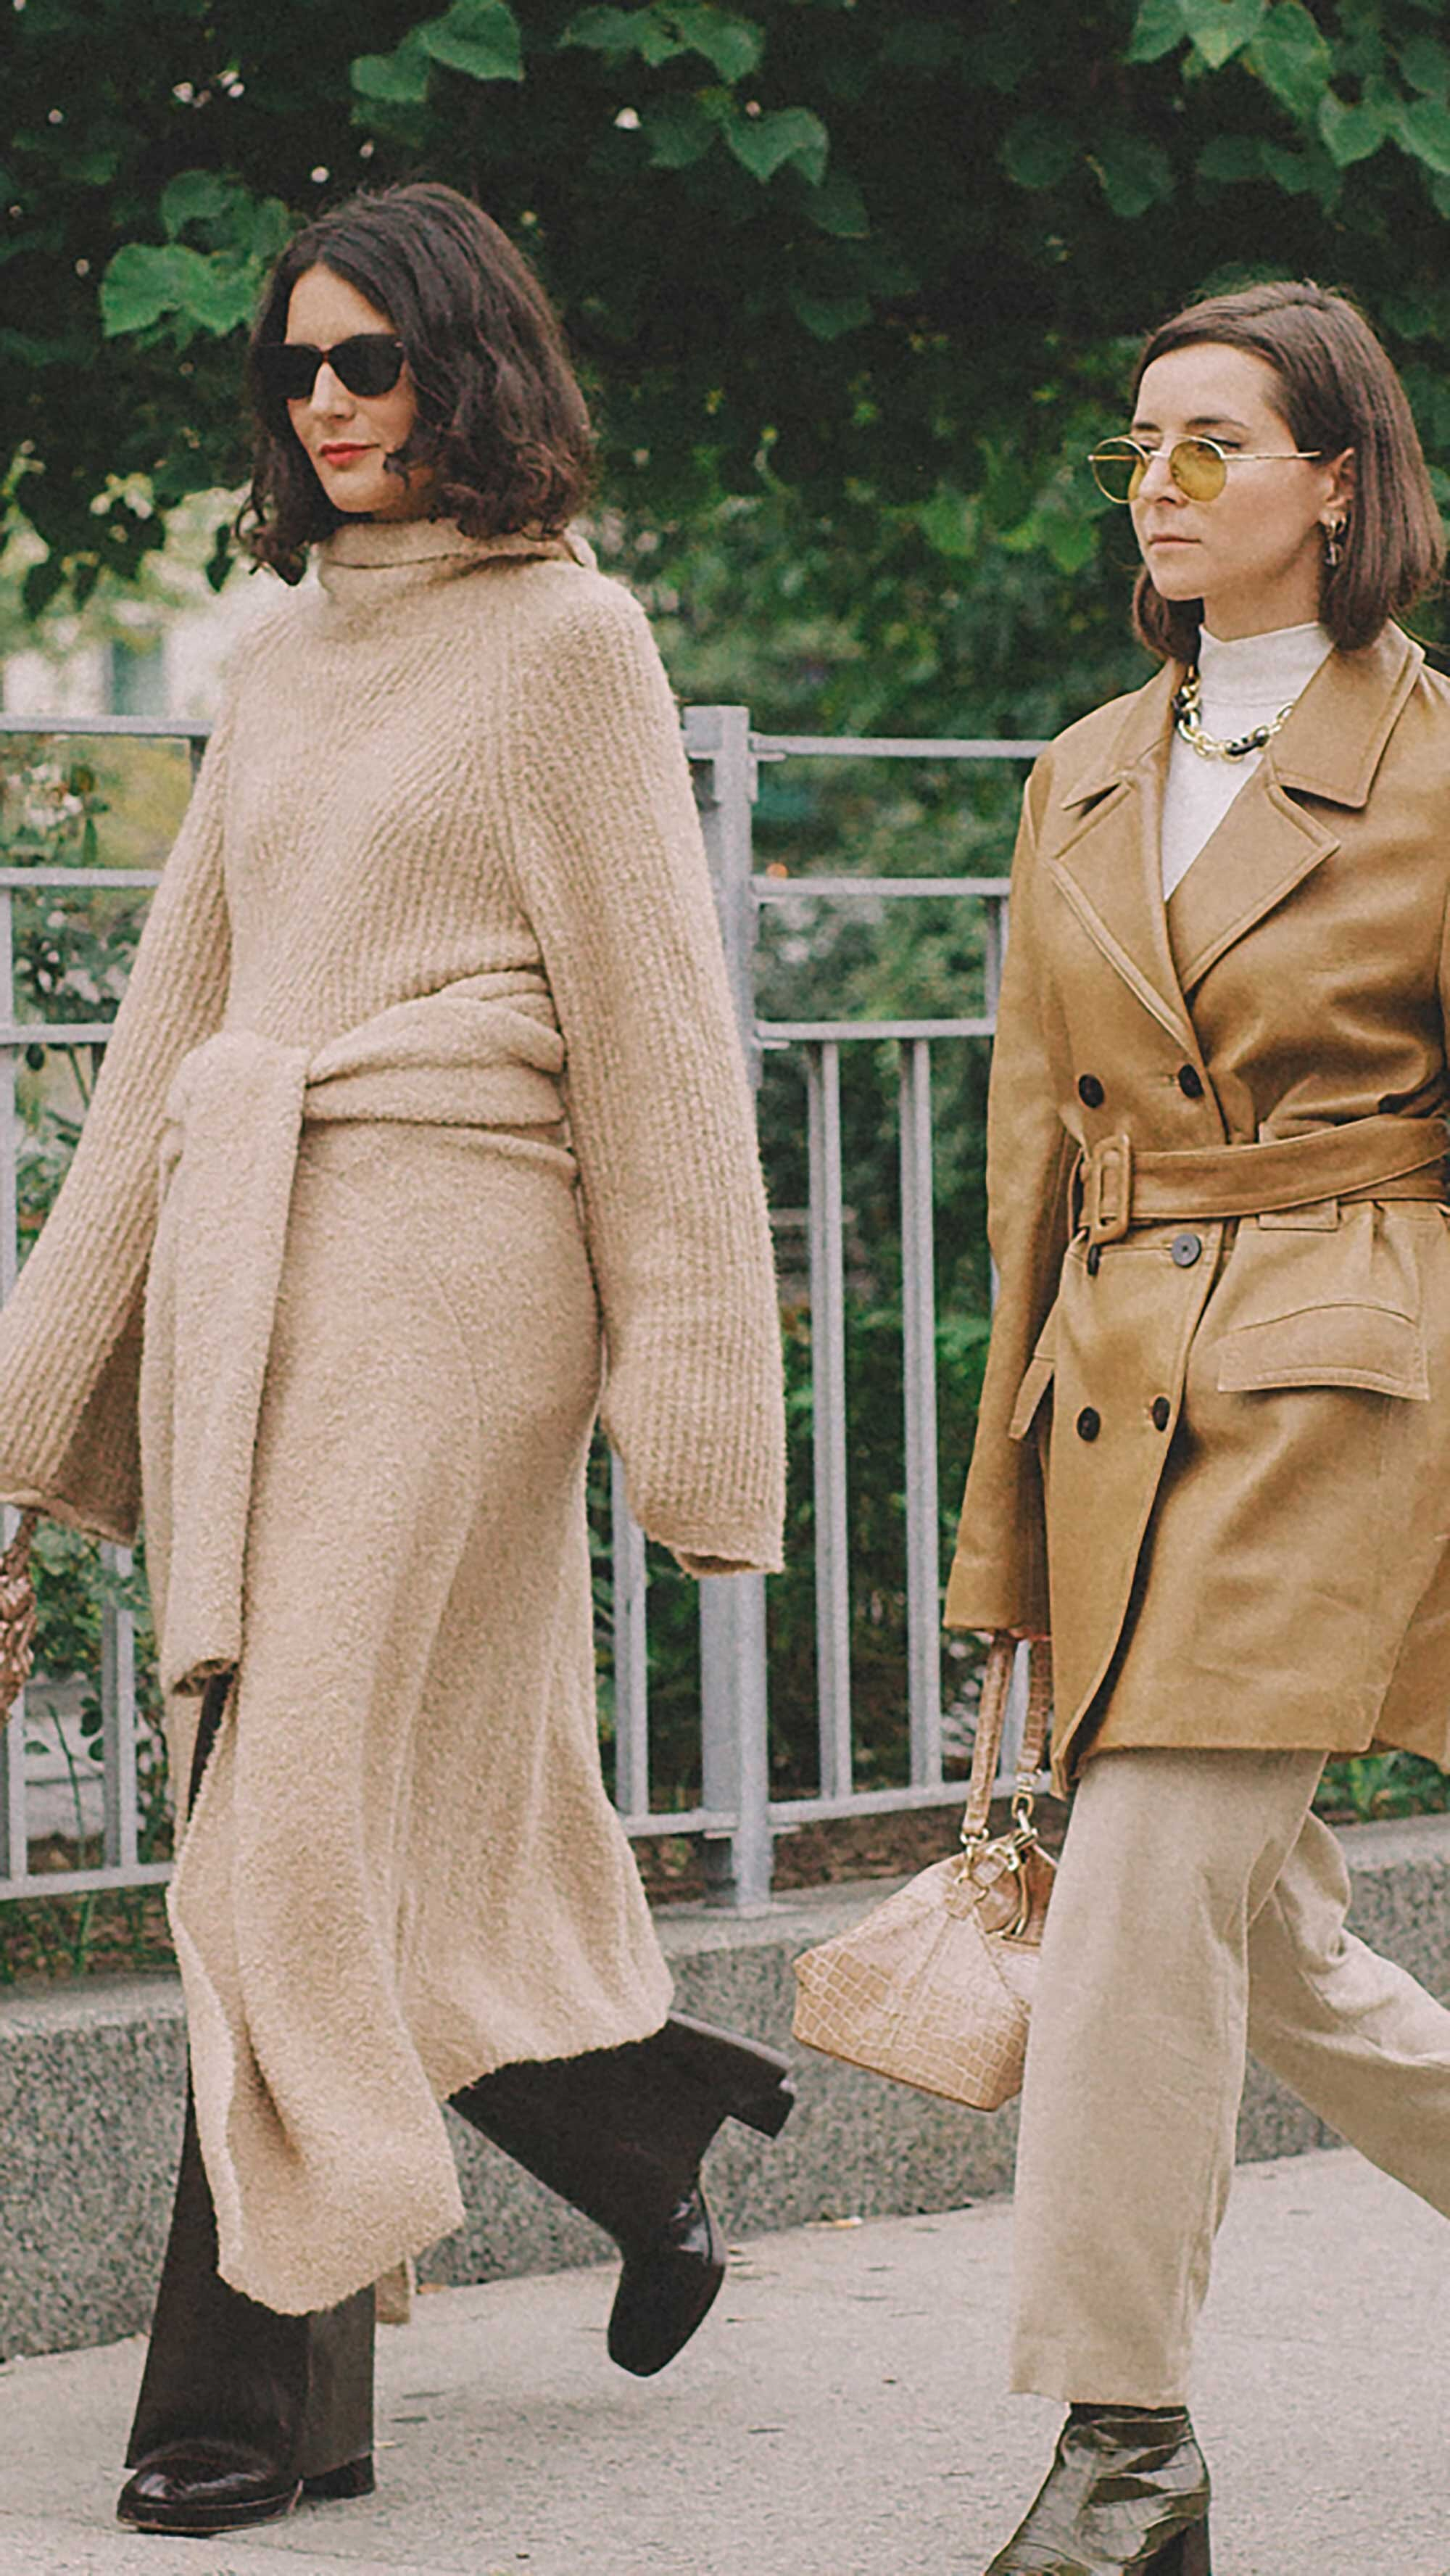 Best outfits of New York Fashion Week street style -31.jpg